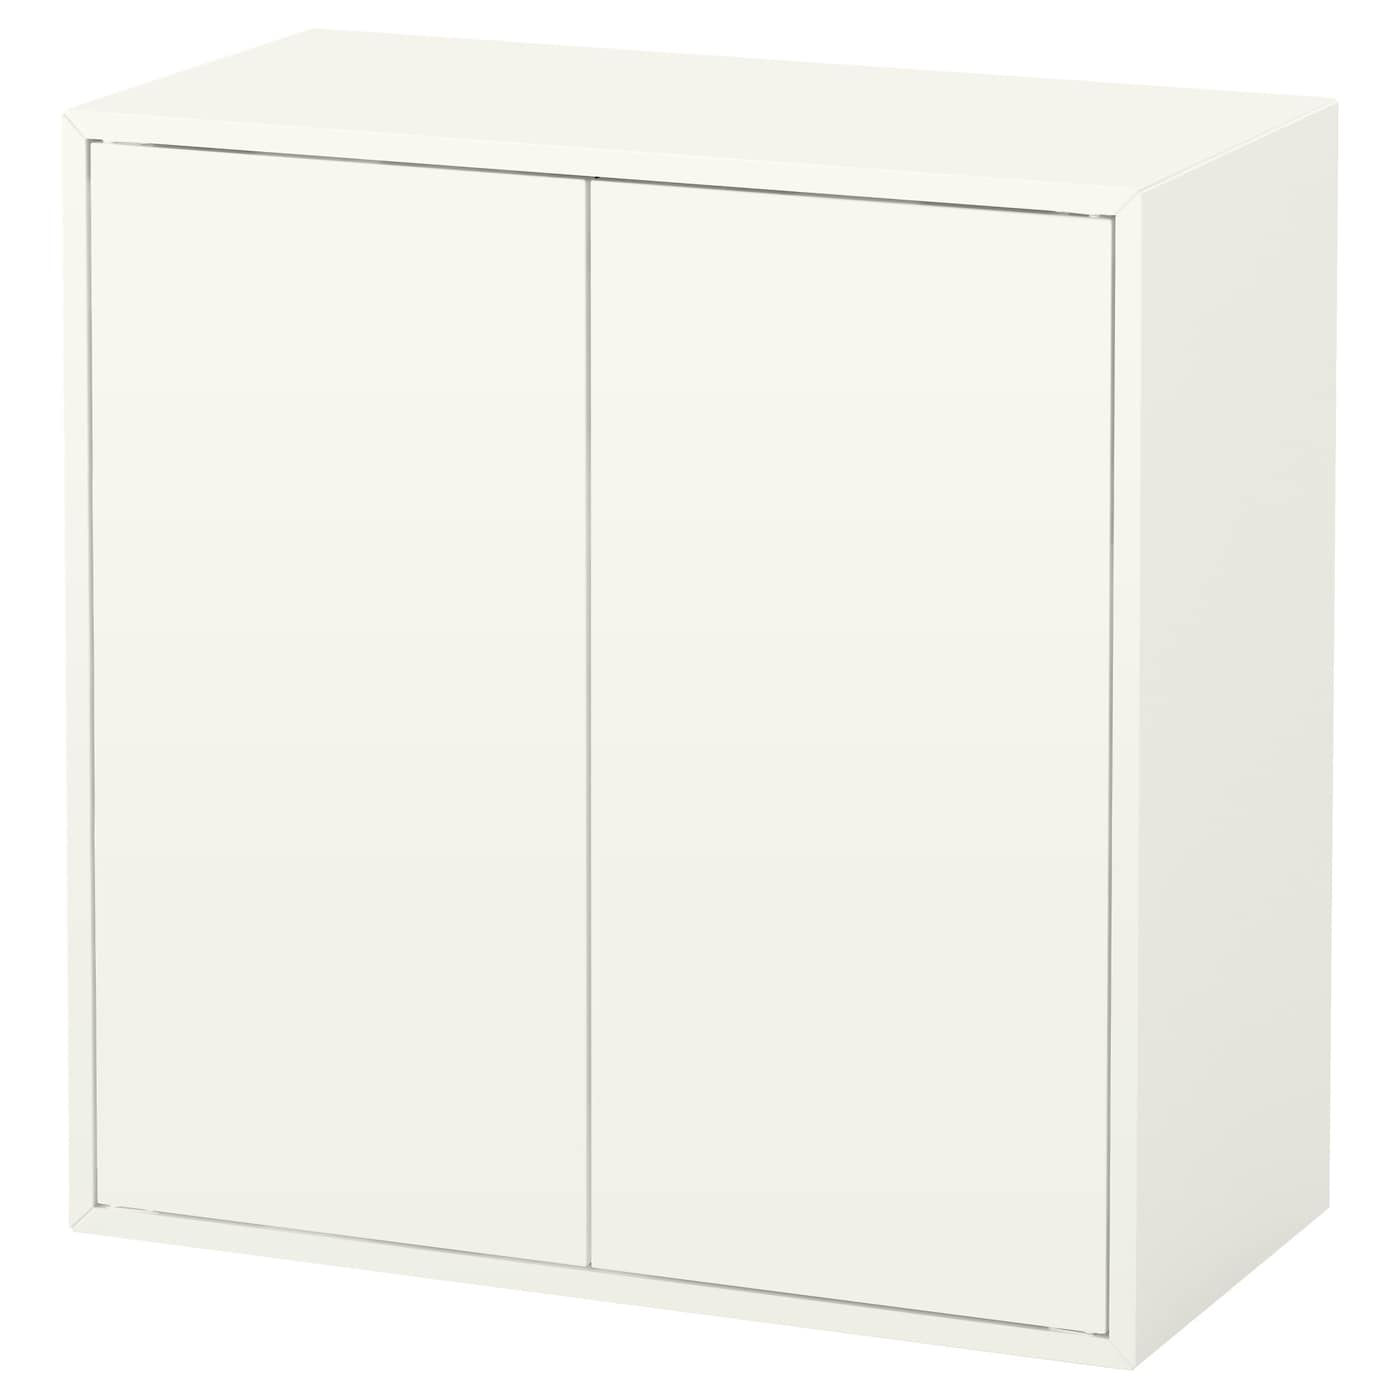 eket cabinet w 2 doors and 1 shelf white 70 x 35 x 70 cm ikea. Black Bedroom Furniture Sets. Home Design Ideas